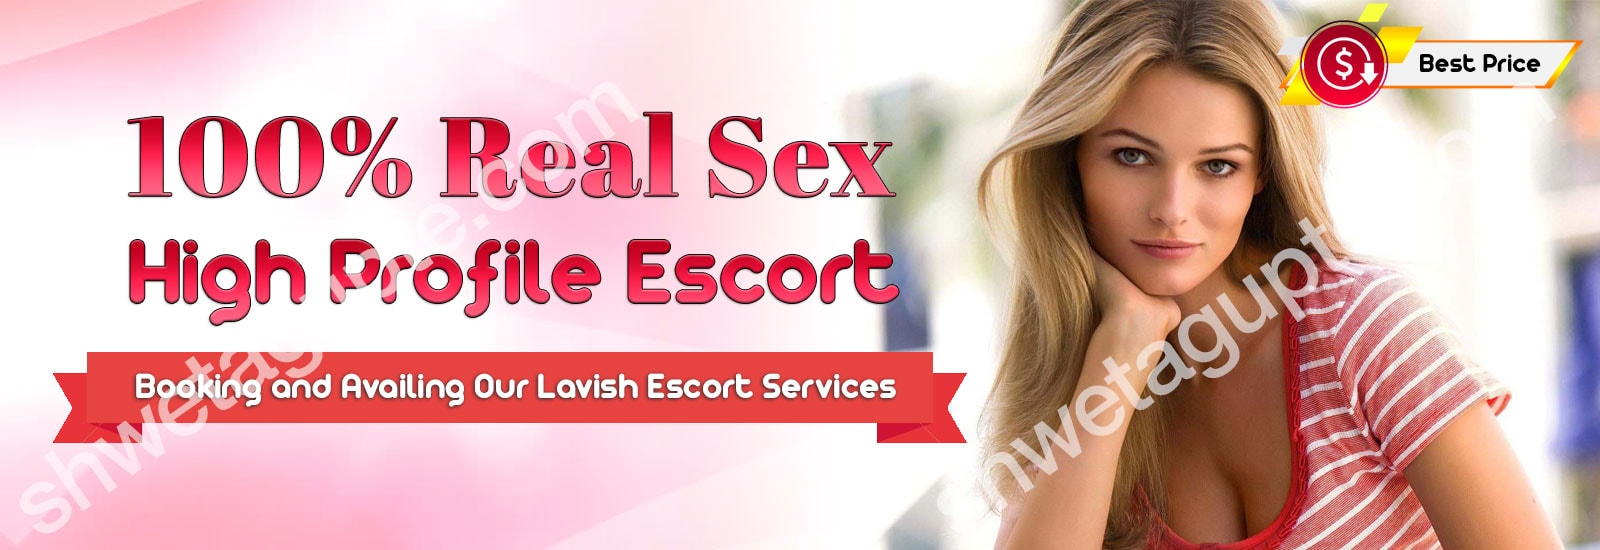 Escort in Chennai